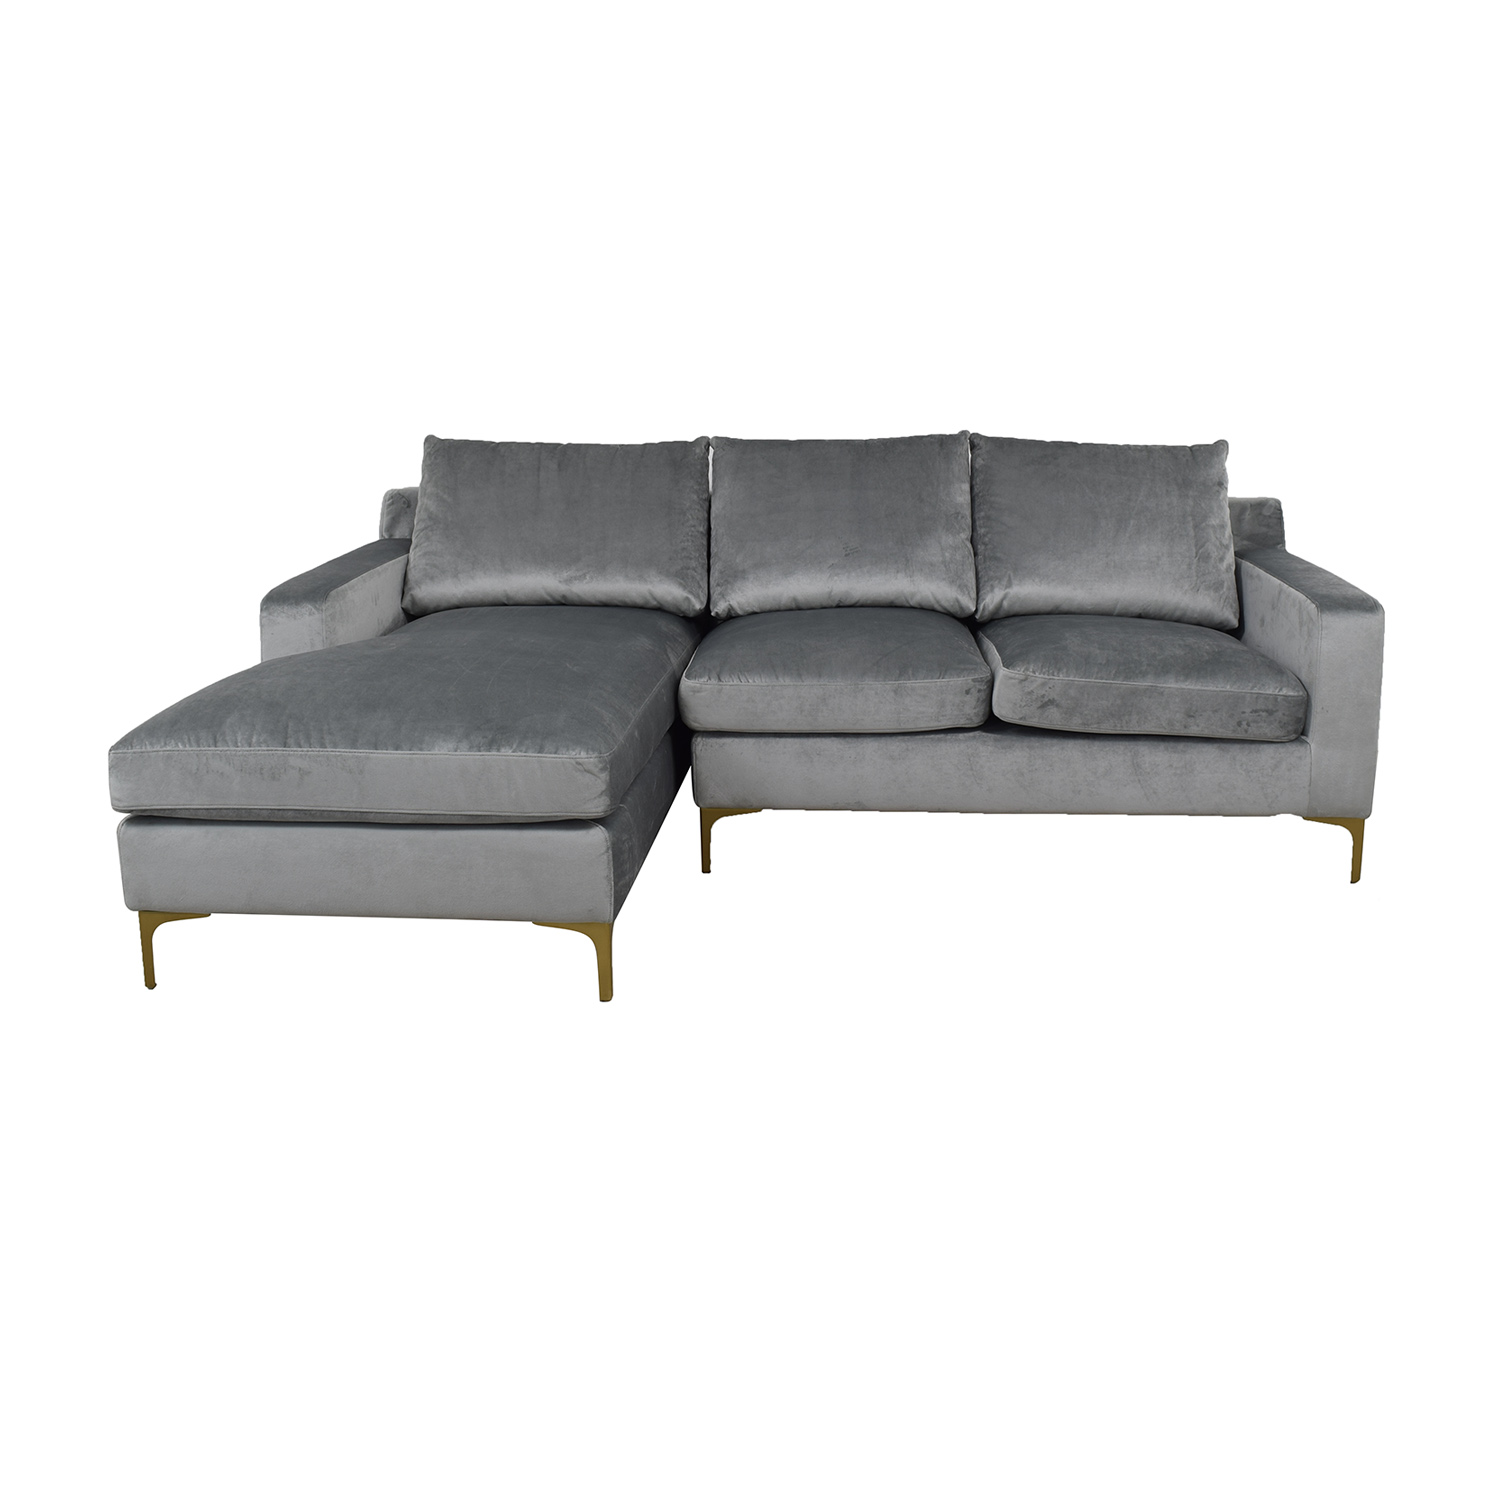 buy  Grey Sloan Left Chaise Sectional online